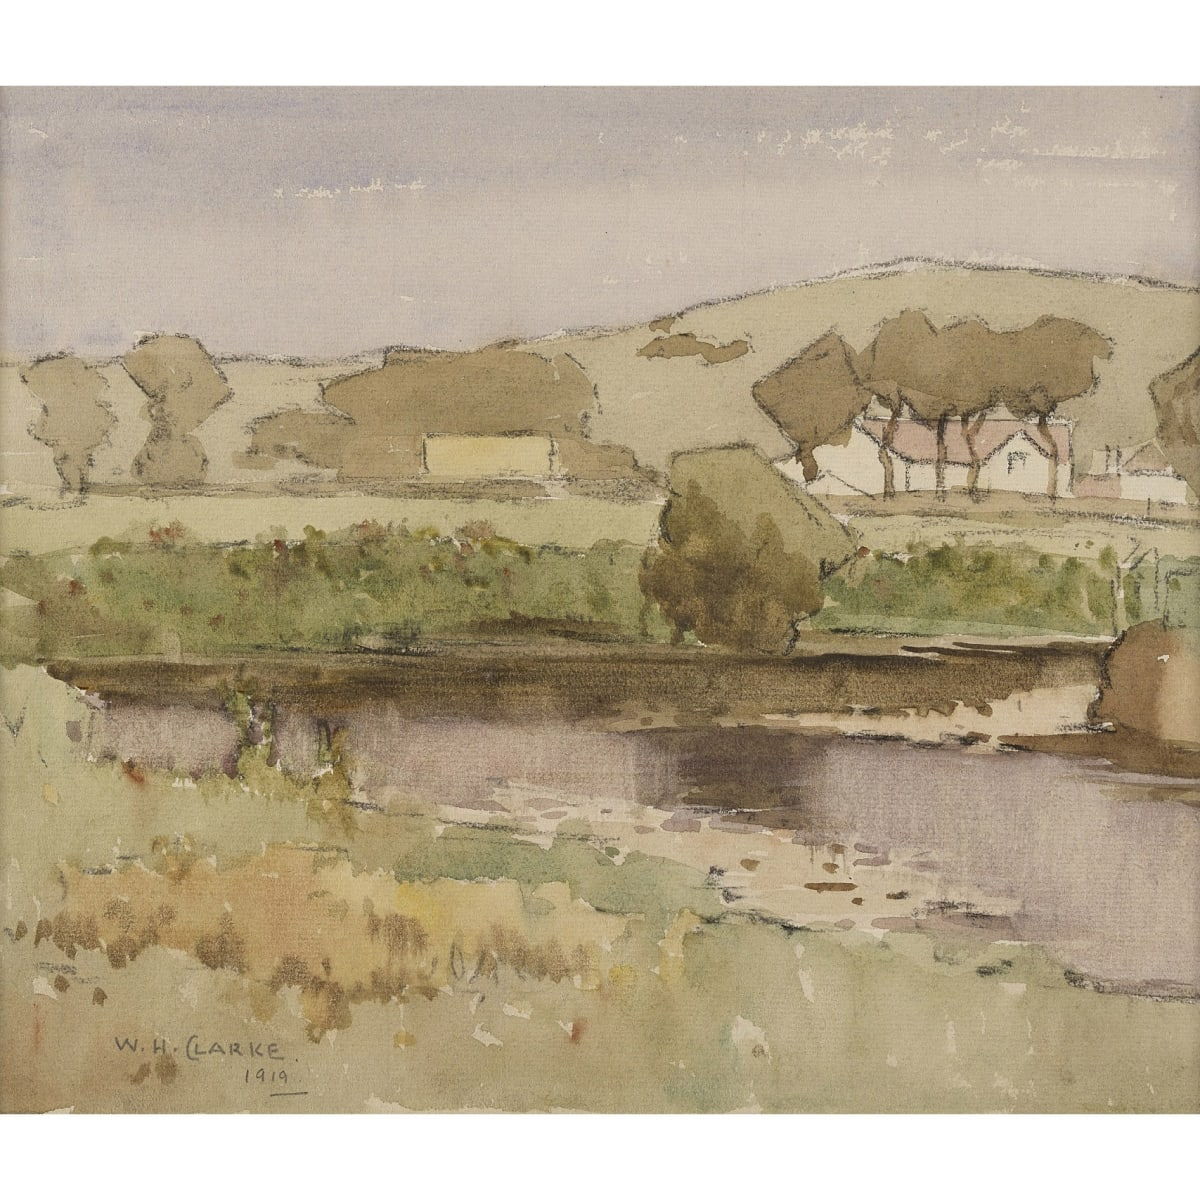 William Hanna Clarke A Galloway Landscape, 1919 signed and dated 1919 watercolour 9 3/4 x 11 1/2 inches